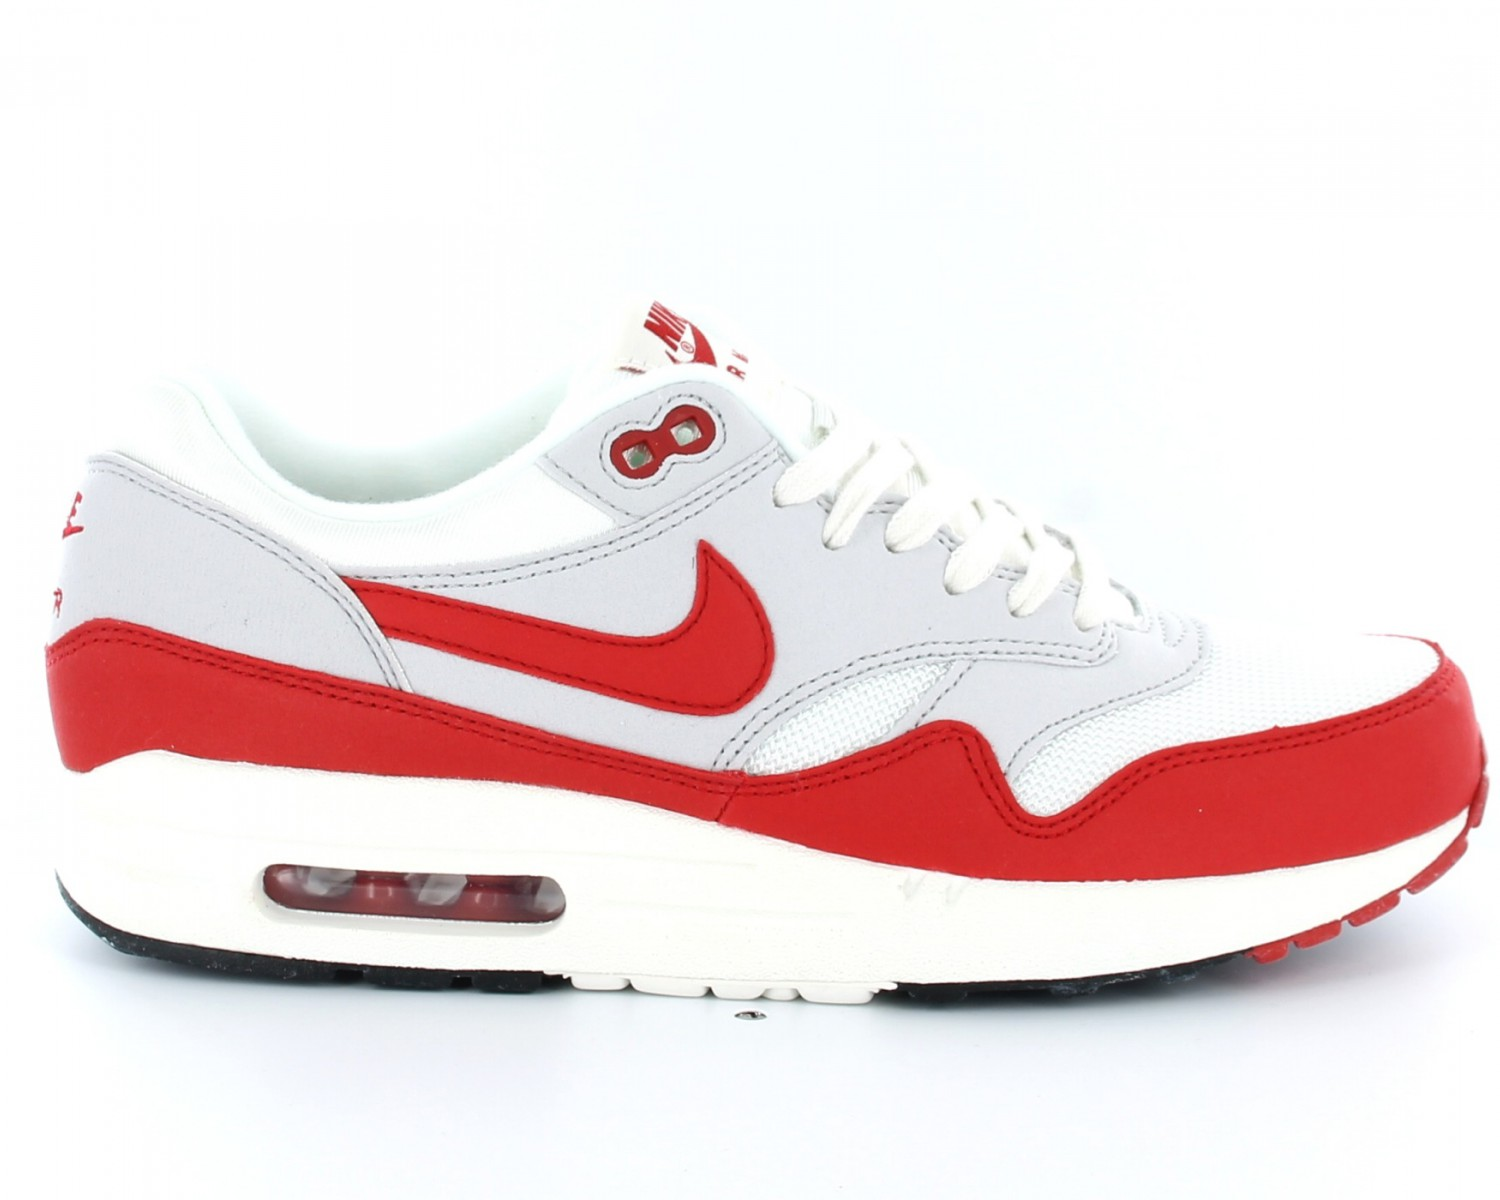 nike air max one rouge femme,Nike Air Max 1 QS GS OG Red ...